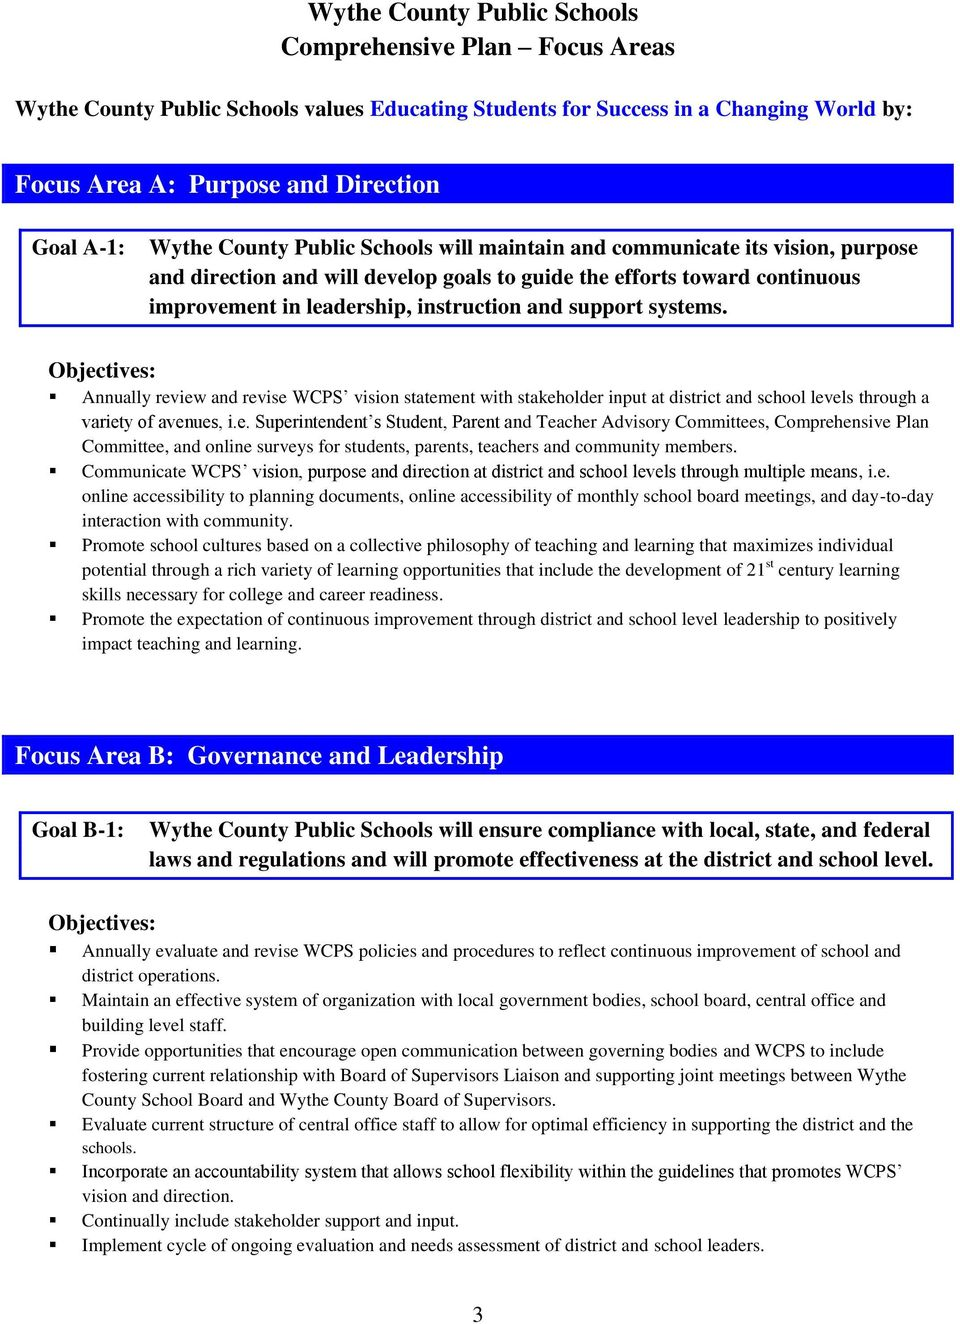 improvement in leadership, instruction and support systems. Annually review and revise WCPS vision statement with stakeholder input at district and school levels through a variety of avenues, i.e. Superintendent s Student, Parent and Teacher Advisory Committees, Comprehensive Plan Committee, and online surveys for students, parents, teachers and community members.